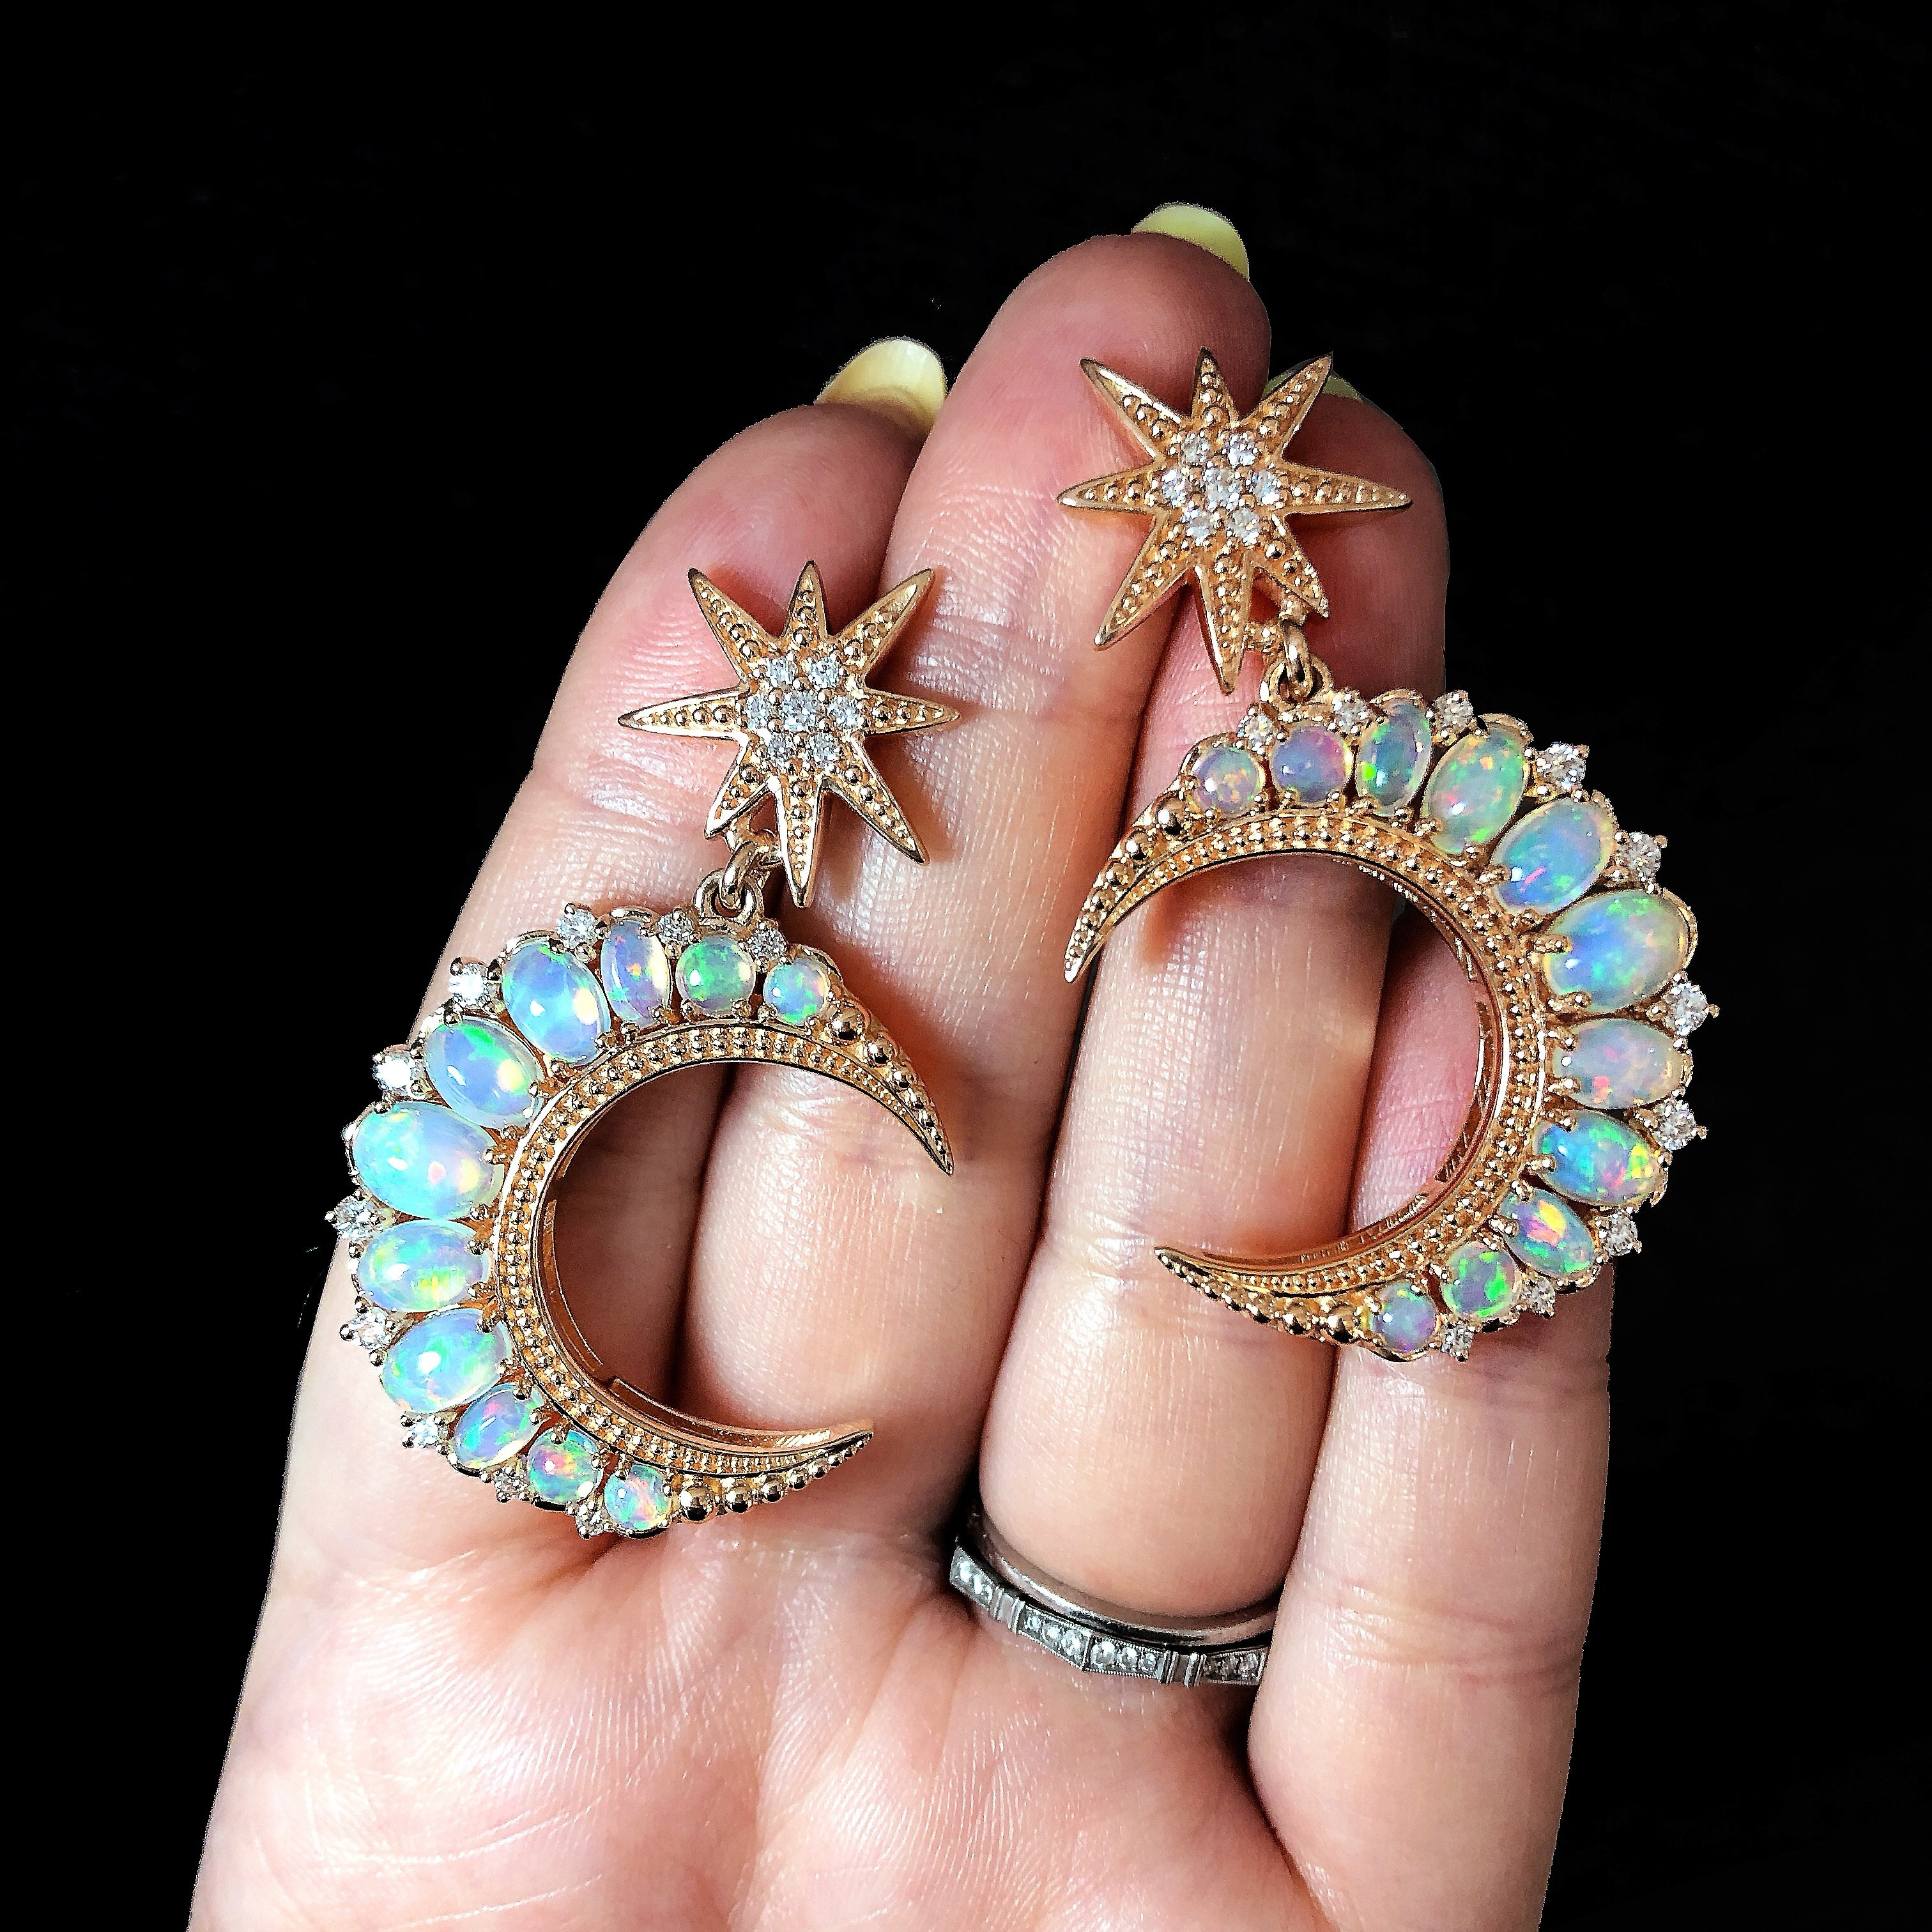 I love these rose gold and opal crescent moon earrings by Dallas Prince Designs.